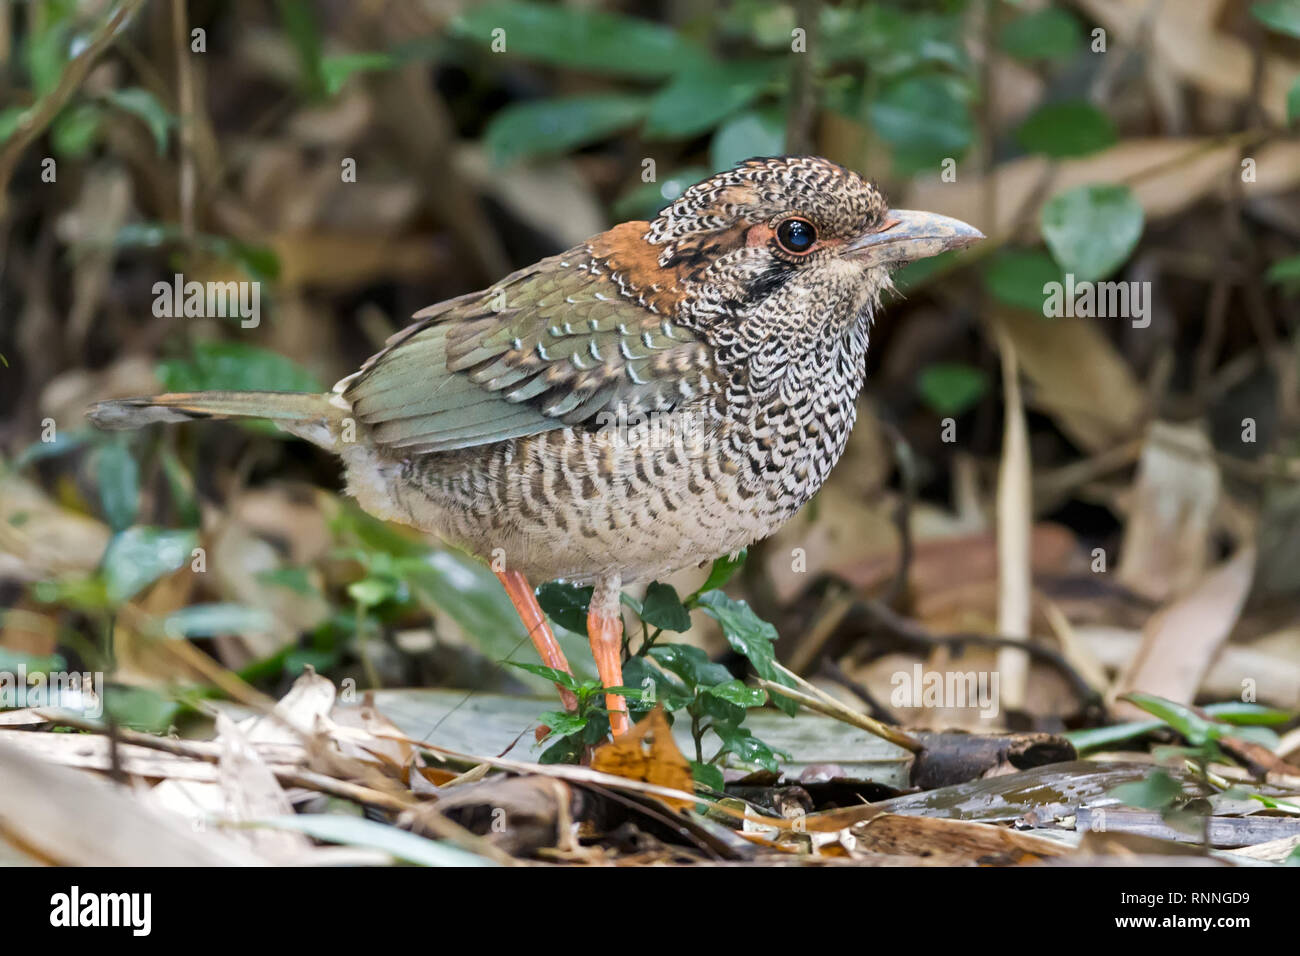 Scaly Ground Roller, Geobiastes squamiger, Ranomafana National Park Madagascar - Stock Image